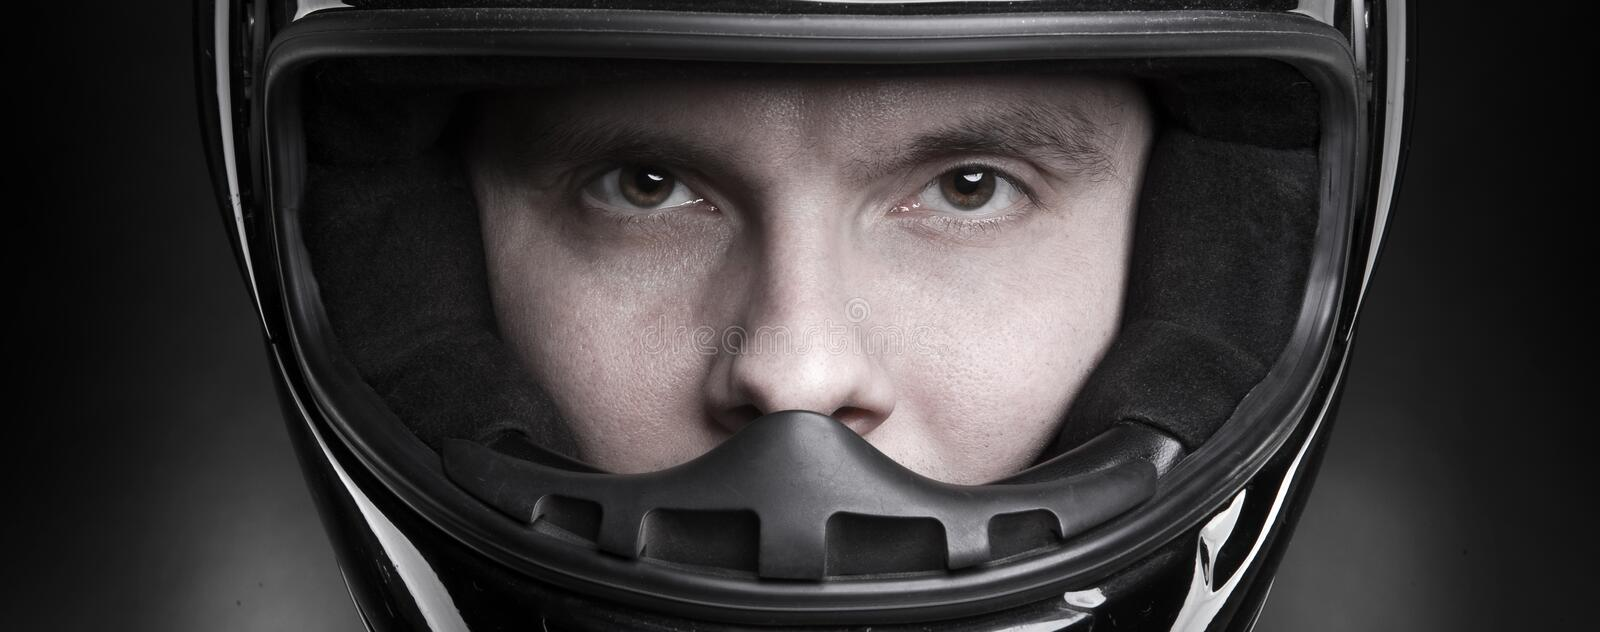 Download Closeup Portrait Of A Man In Helmet Royalty Free Stock Photography - Image: 17724657